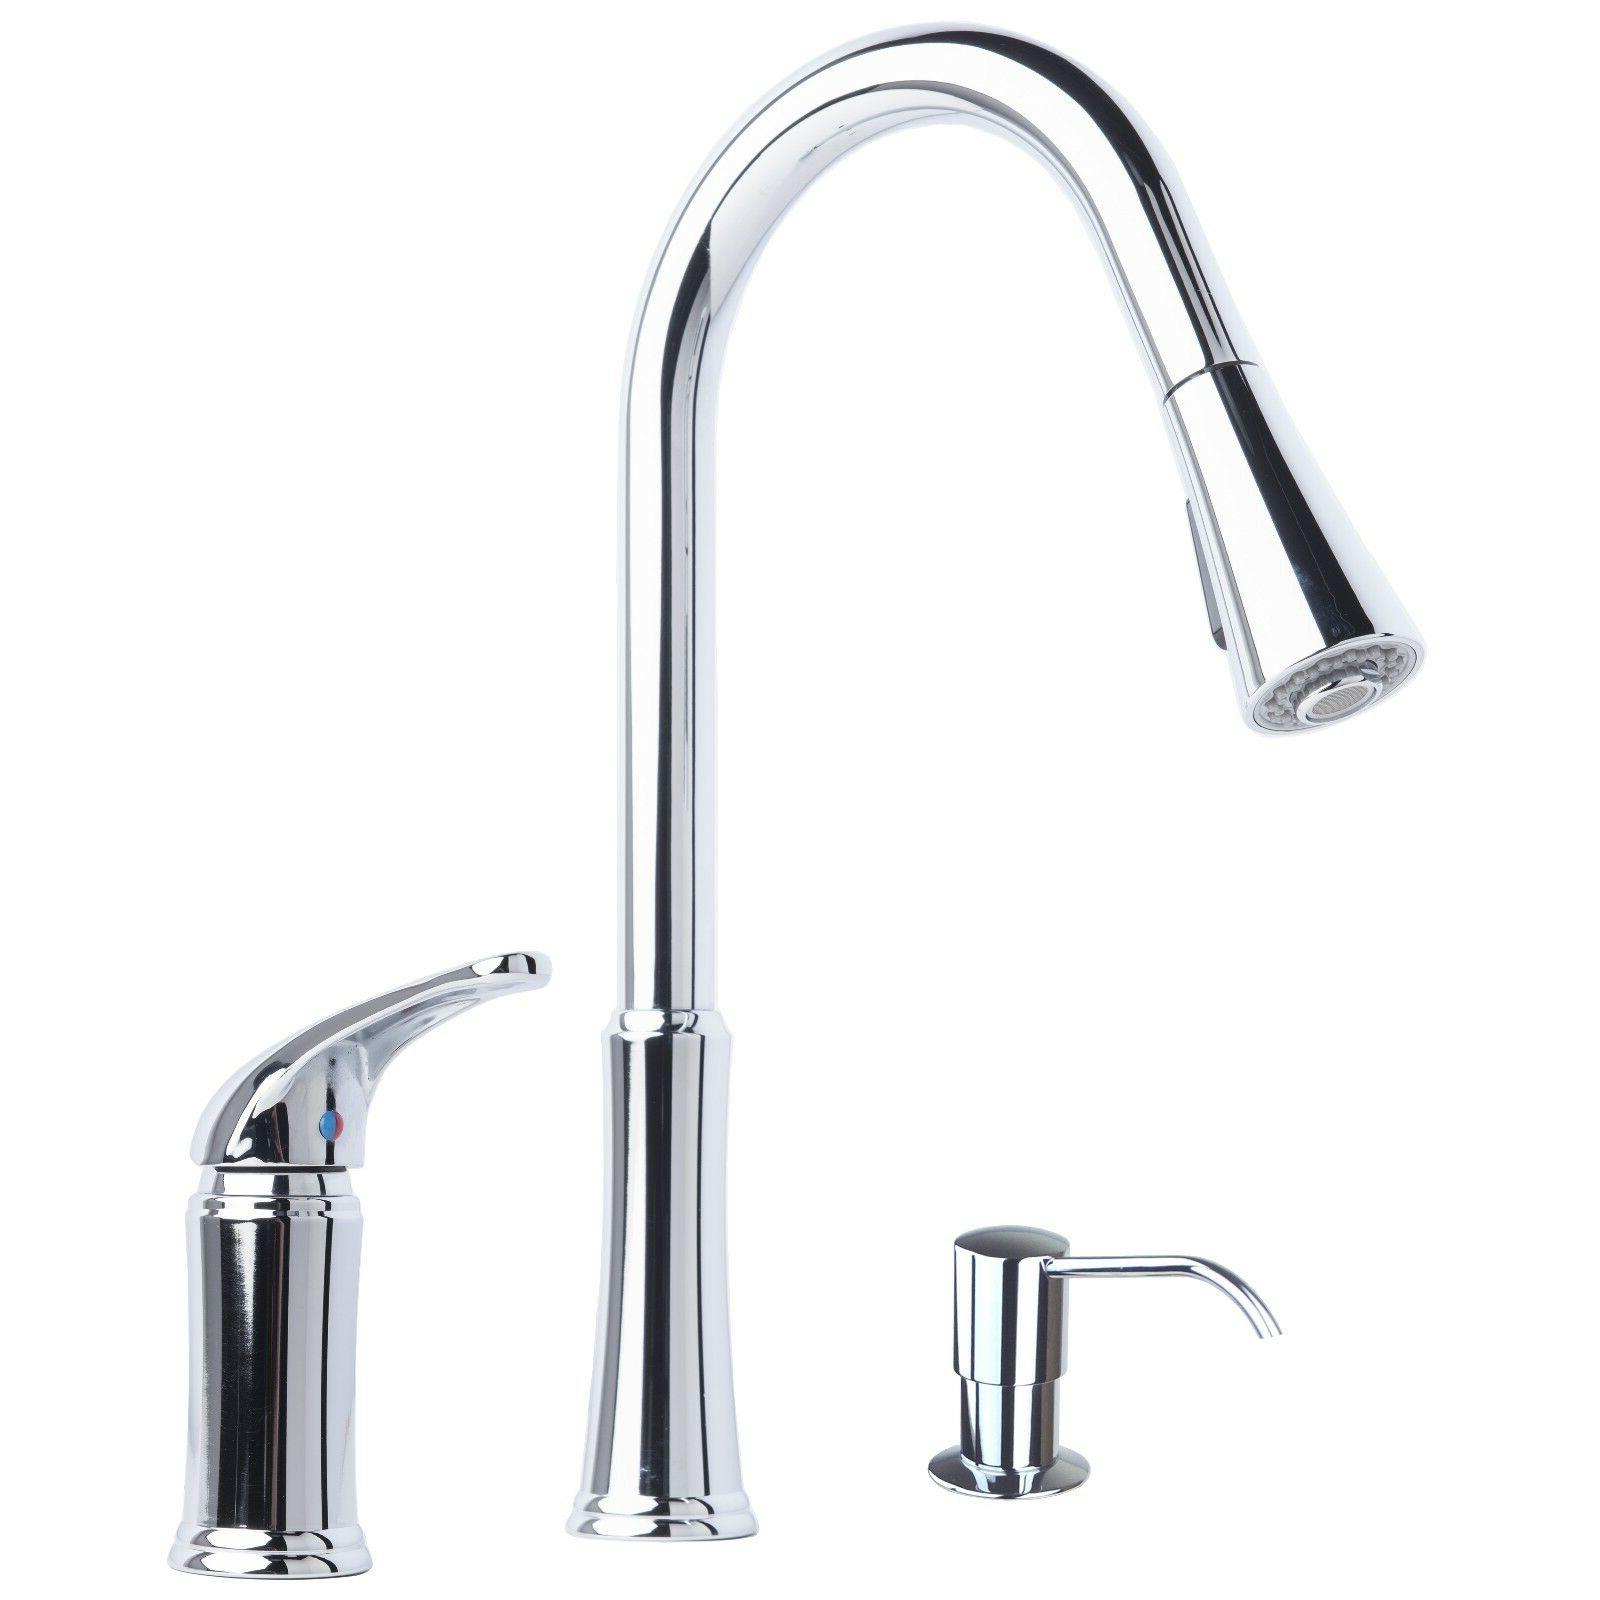 Contemporary Pull-Down Kitchen Faucet with Soap Dispenser Ch